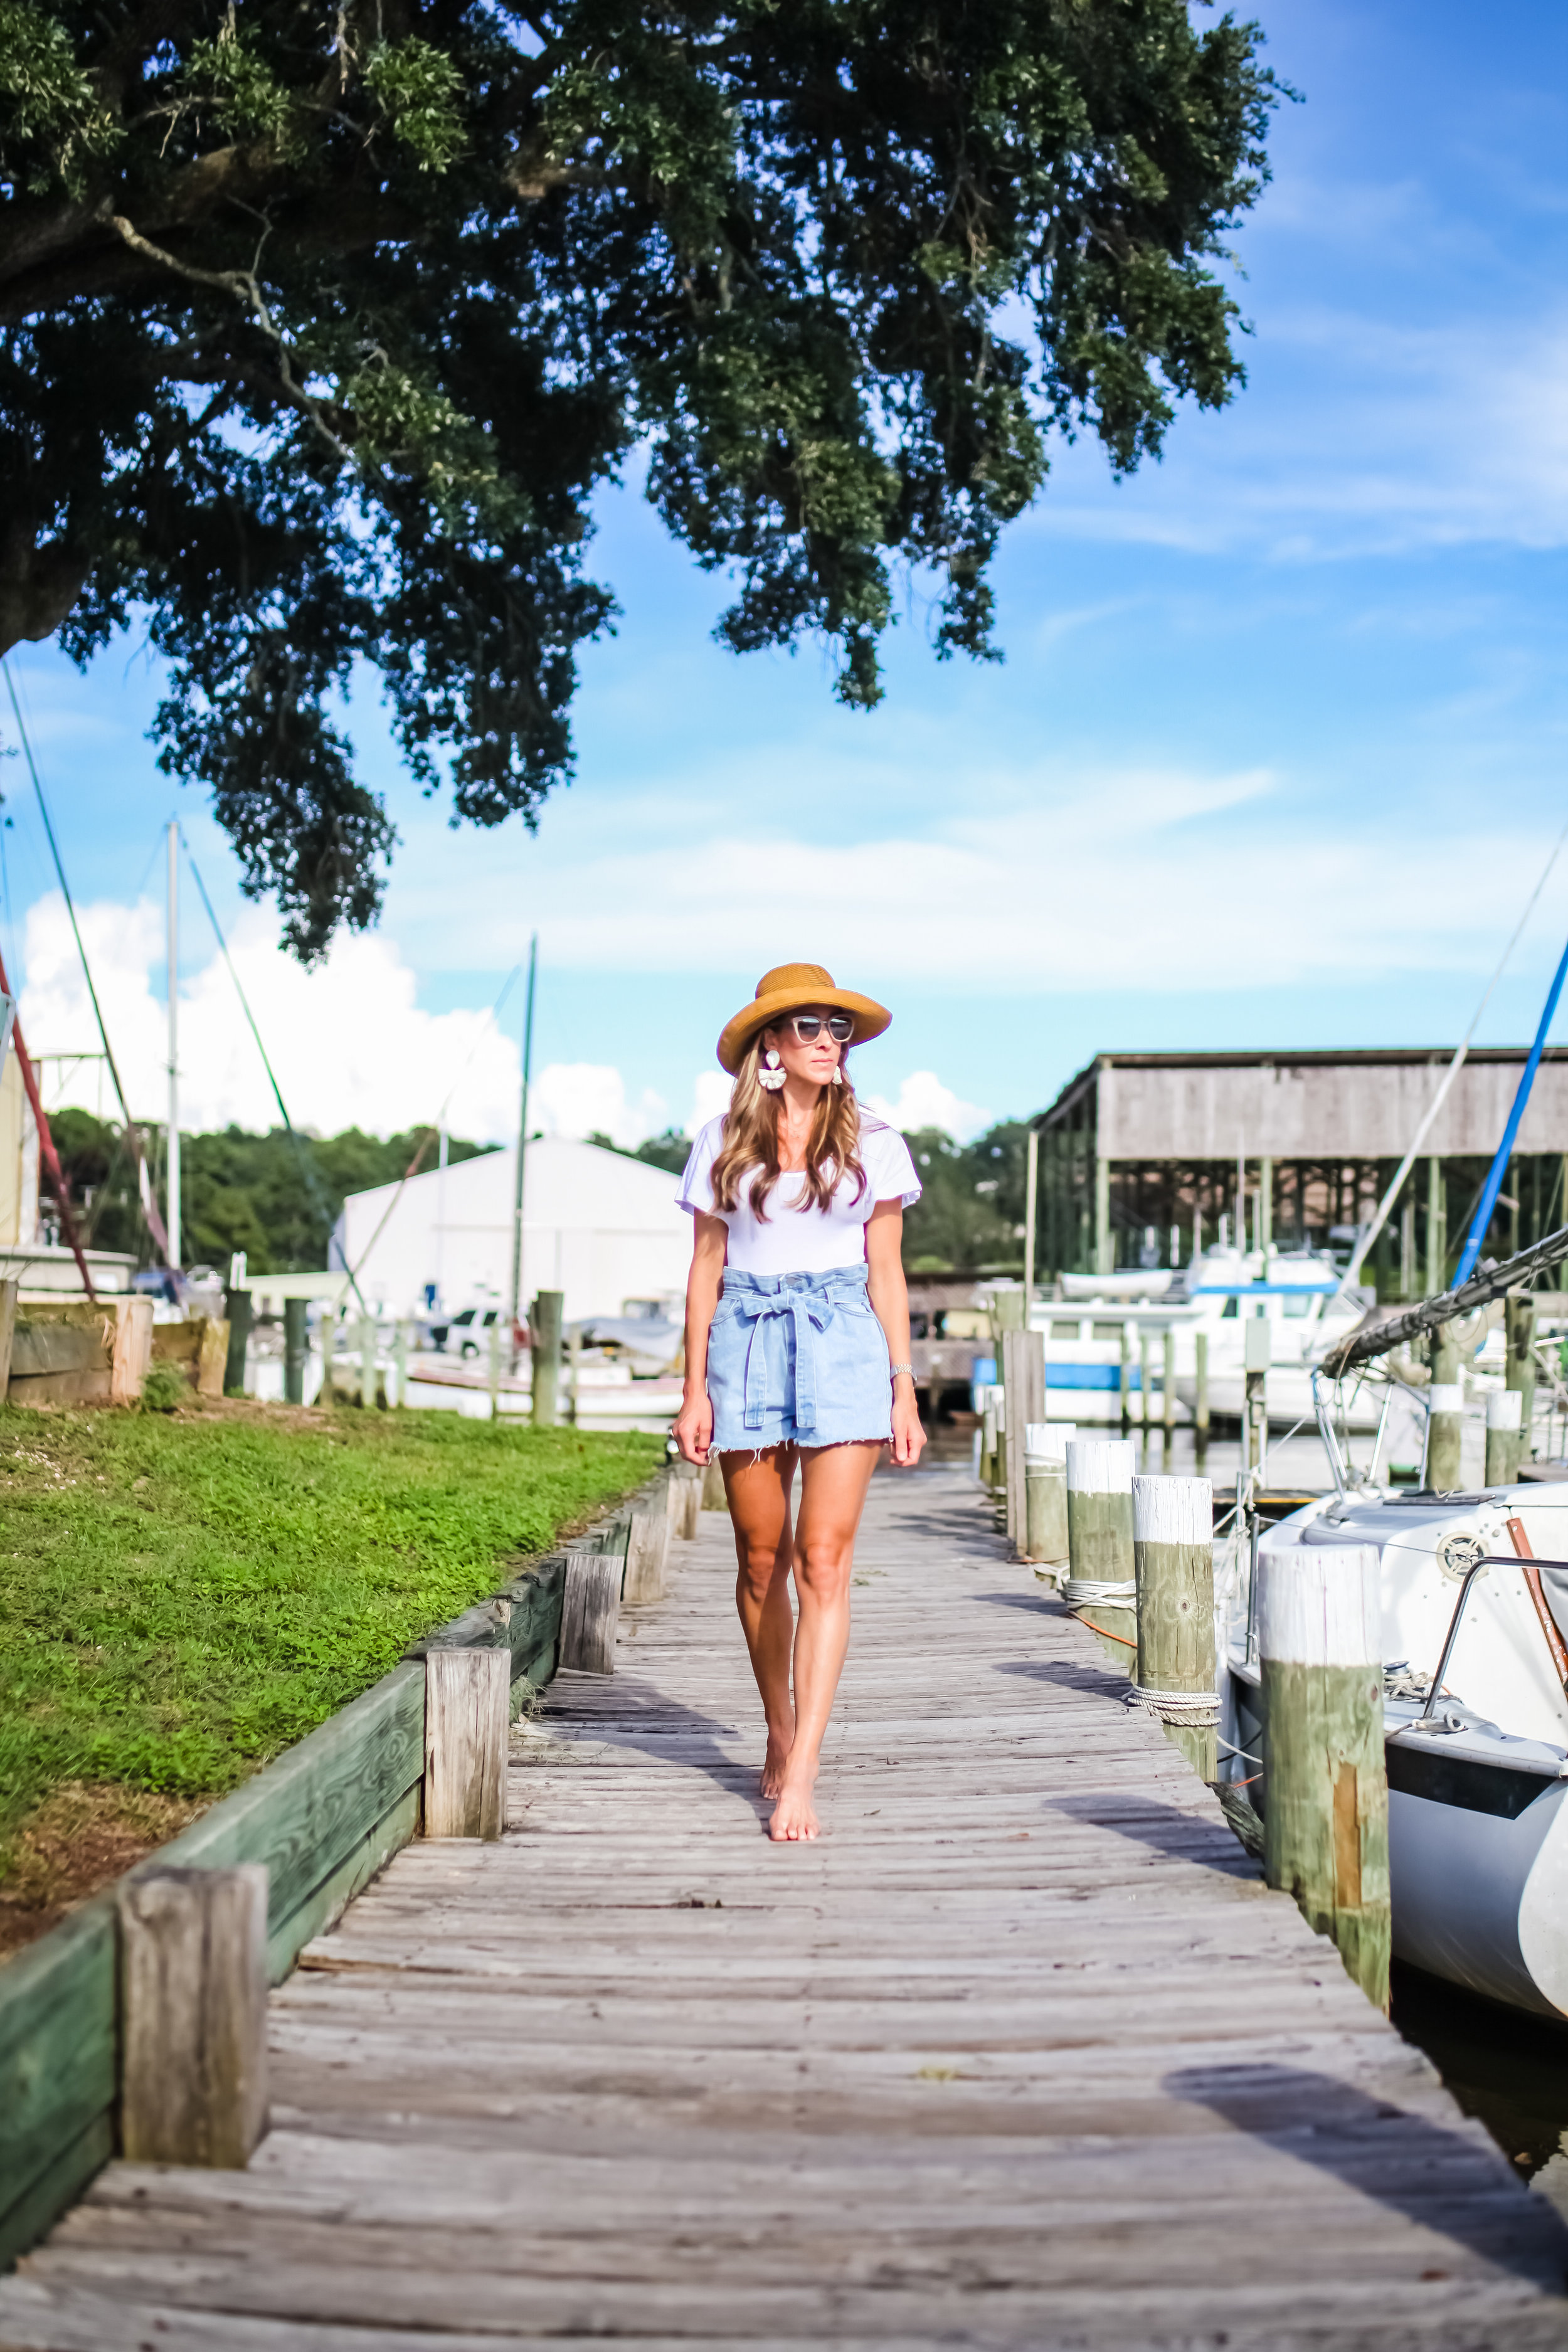 SHORTS - STORETS- ON SALE  HERE  | BODYSUIT - FREE PEOPLE - ON SALE  HERE  | EARRINGS -  SPROUTS DESIGNS  | SUNGLASSES -  JIMMY CHOO  | HAT - LOCALLY BOUGHT AT FAIRHOPE MERCANTILE - SIMILAR HERE | BLUSH - NARS COLOR IS DOLCE VITA | LIPSTICK - NARS